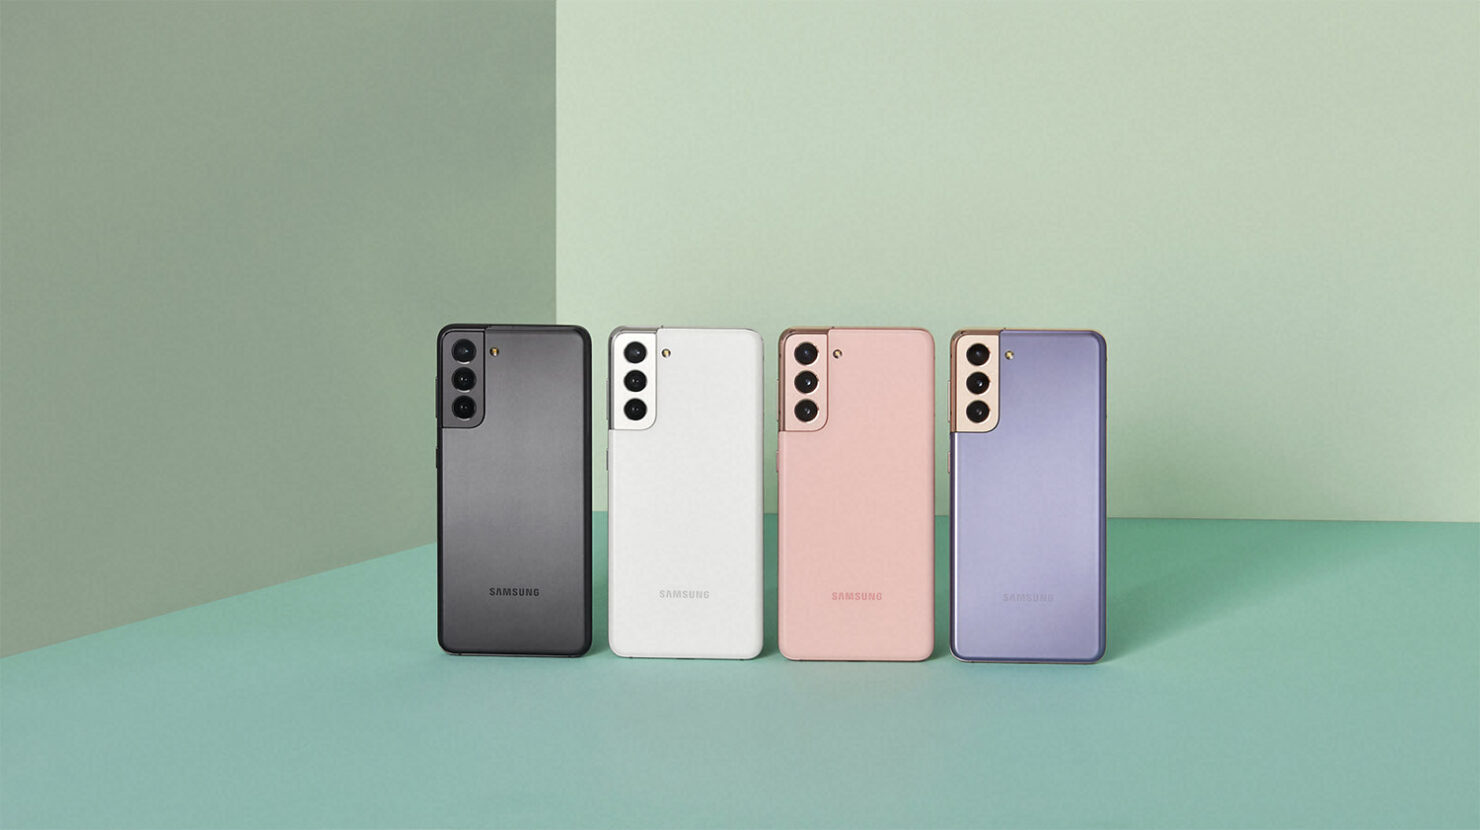 galaxy-s21-and-galaxy-s21-plus-2-2